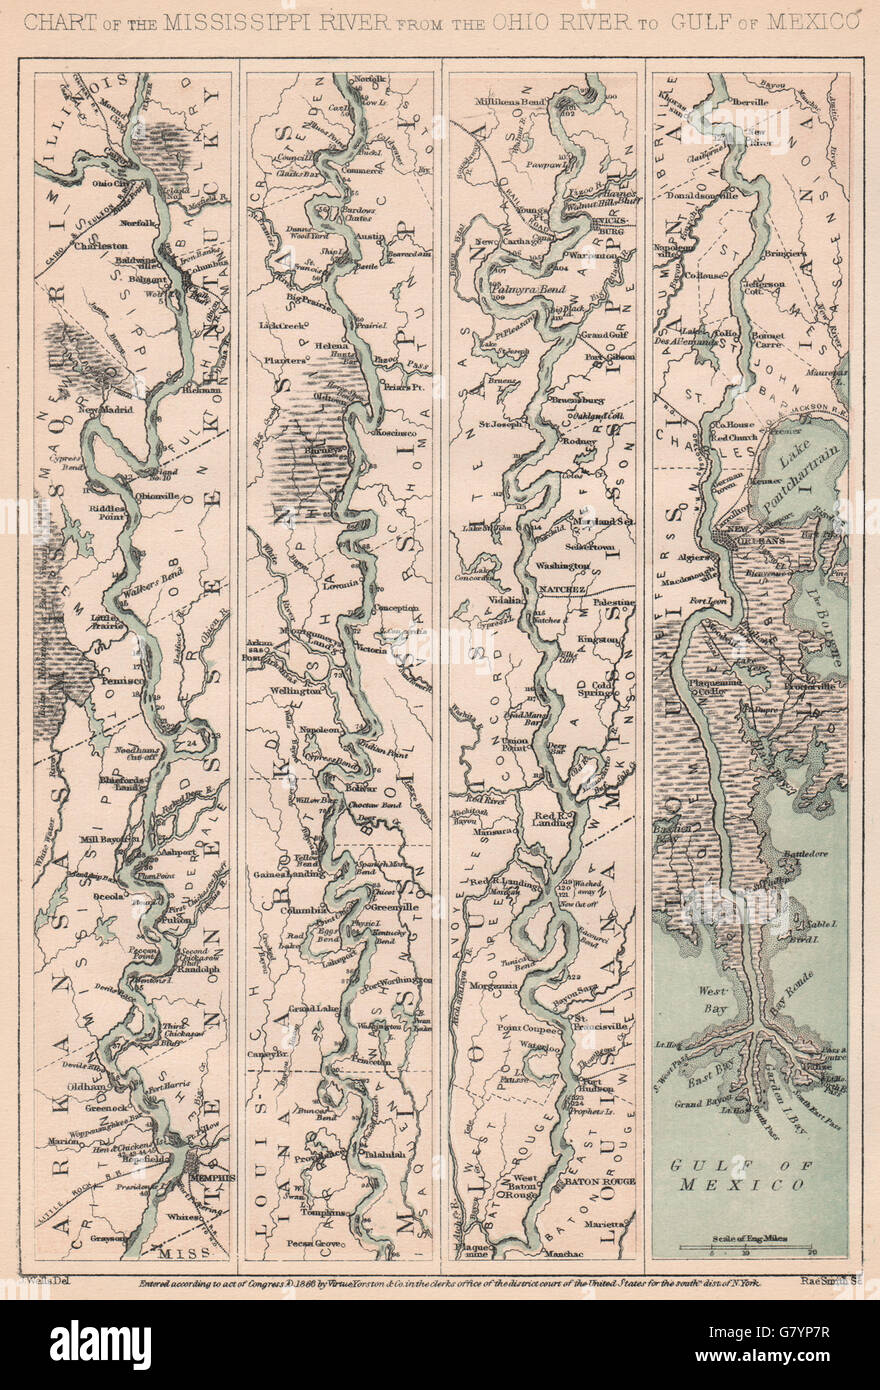 AMERICAN CIVIL WAR Mississippi River from the Ohio to Gulf of